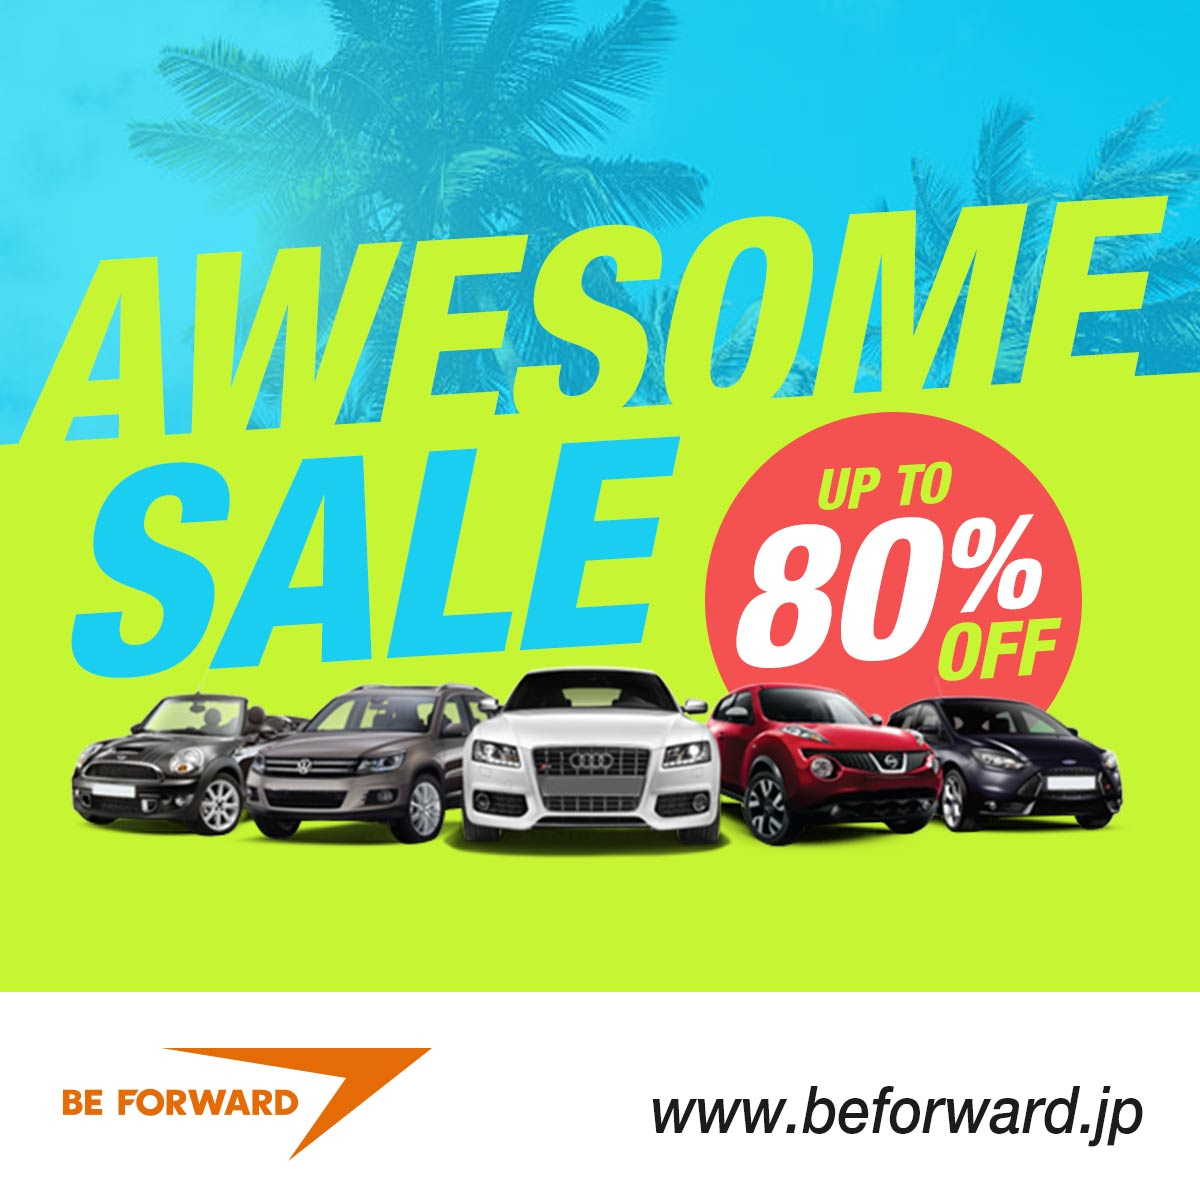 Awesome Sale - Up to 80% Off Japanese Used Cars